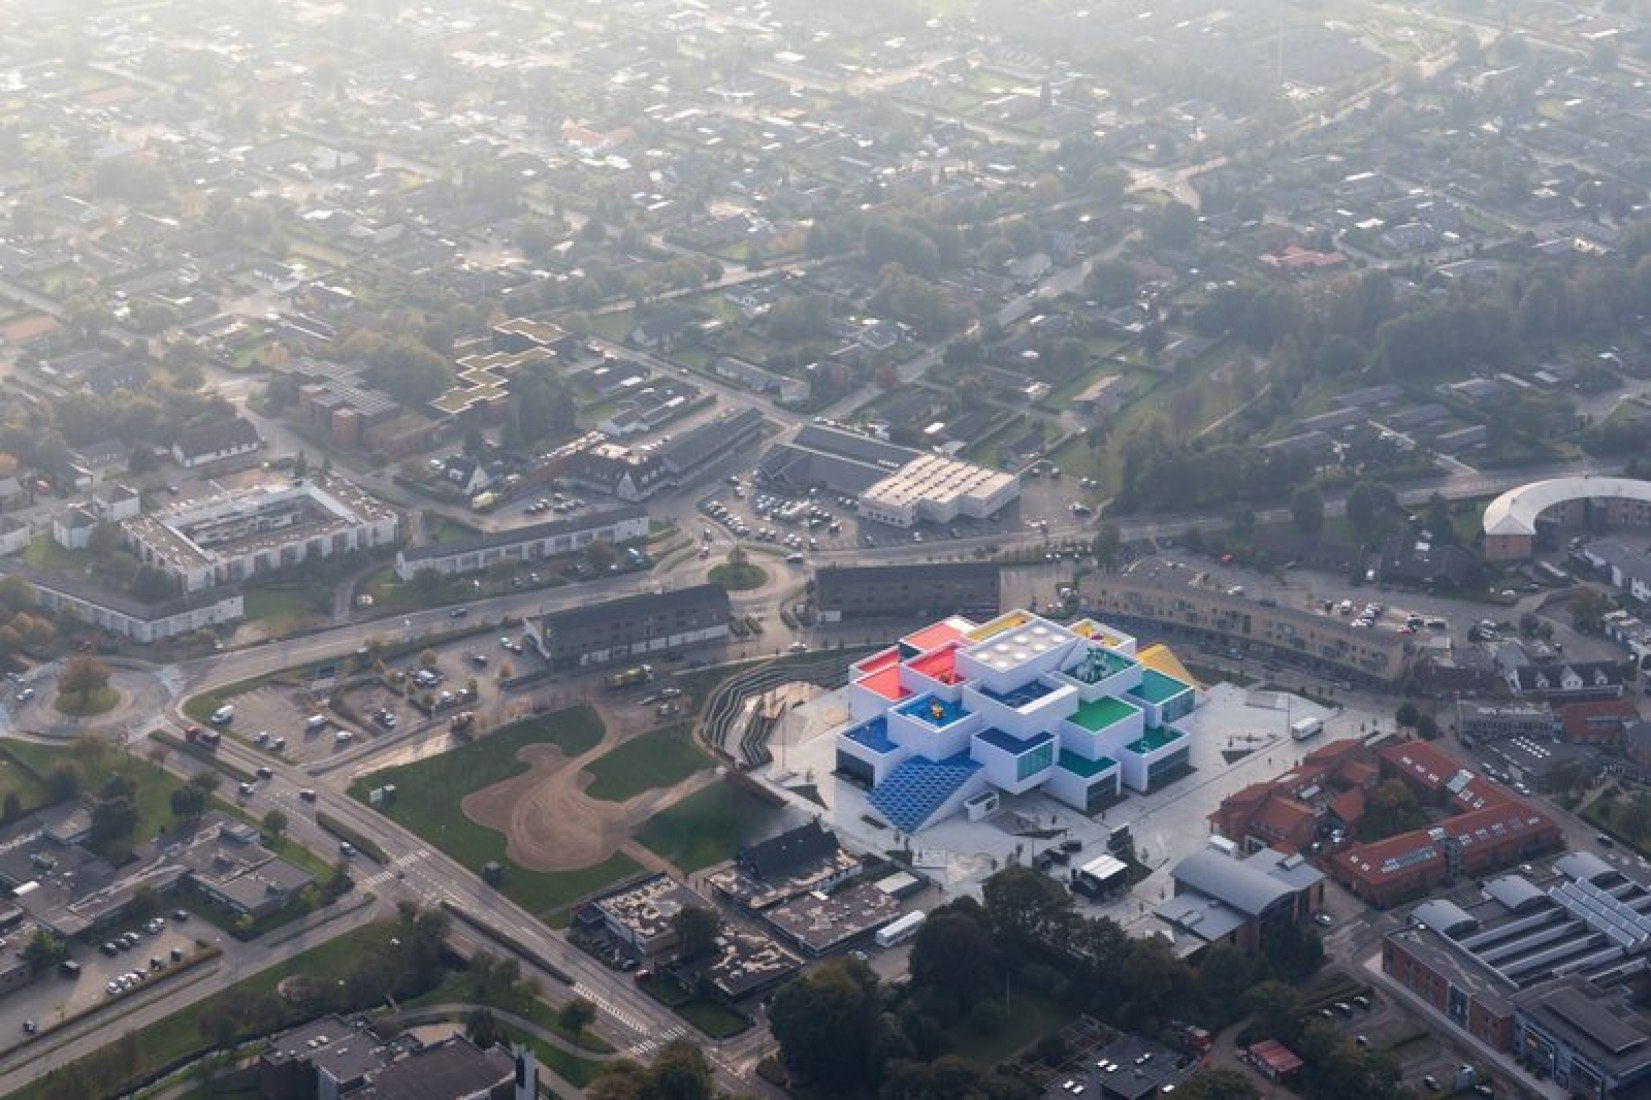 Overview. LEGO House by BIG. Image courtesy of LEGO